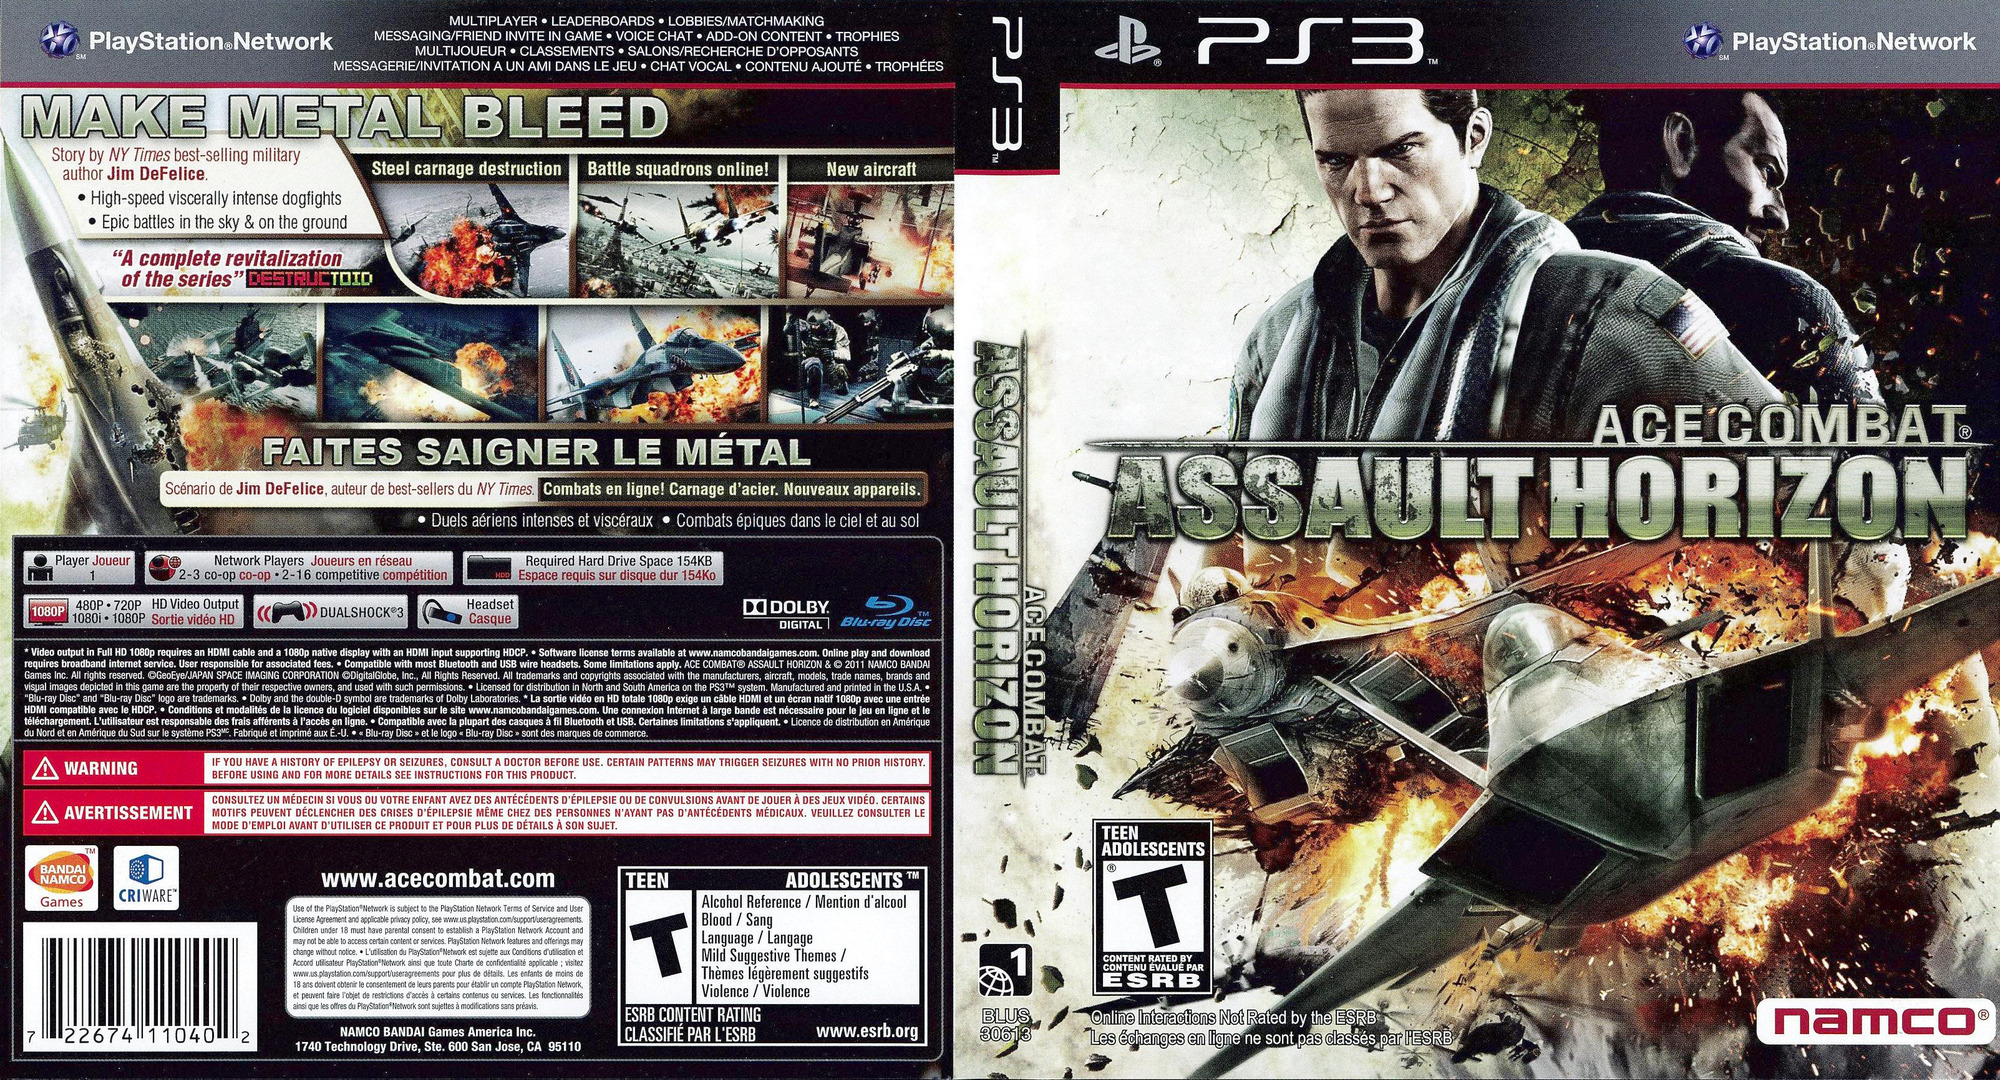 Ace Combat: Assault Horizon PS3 coverfullHQ (BLUS30613)